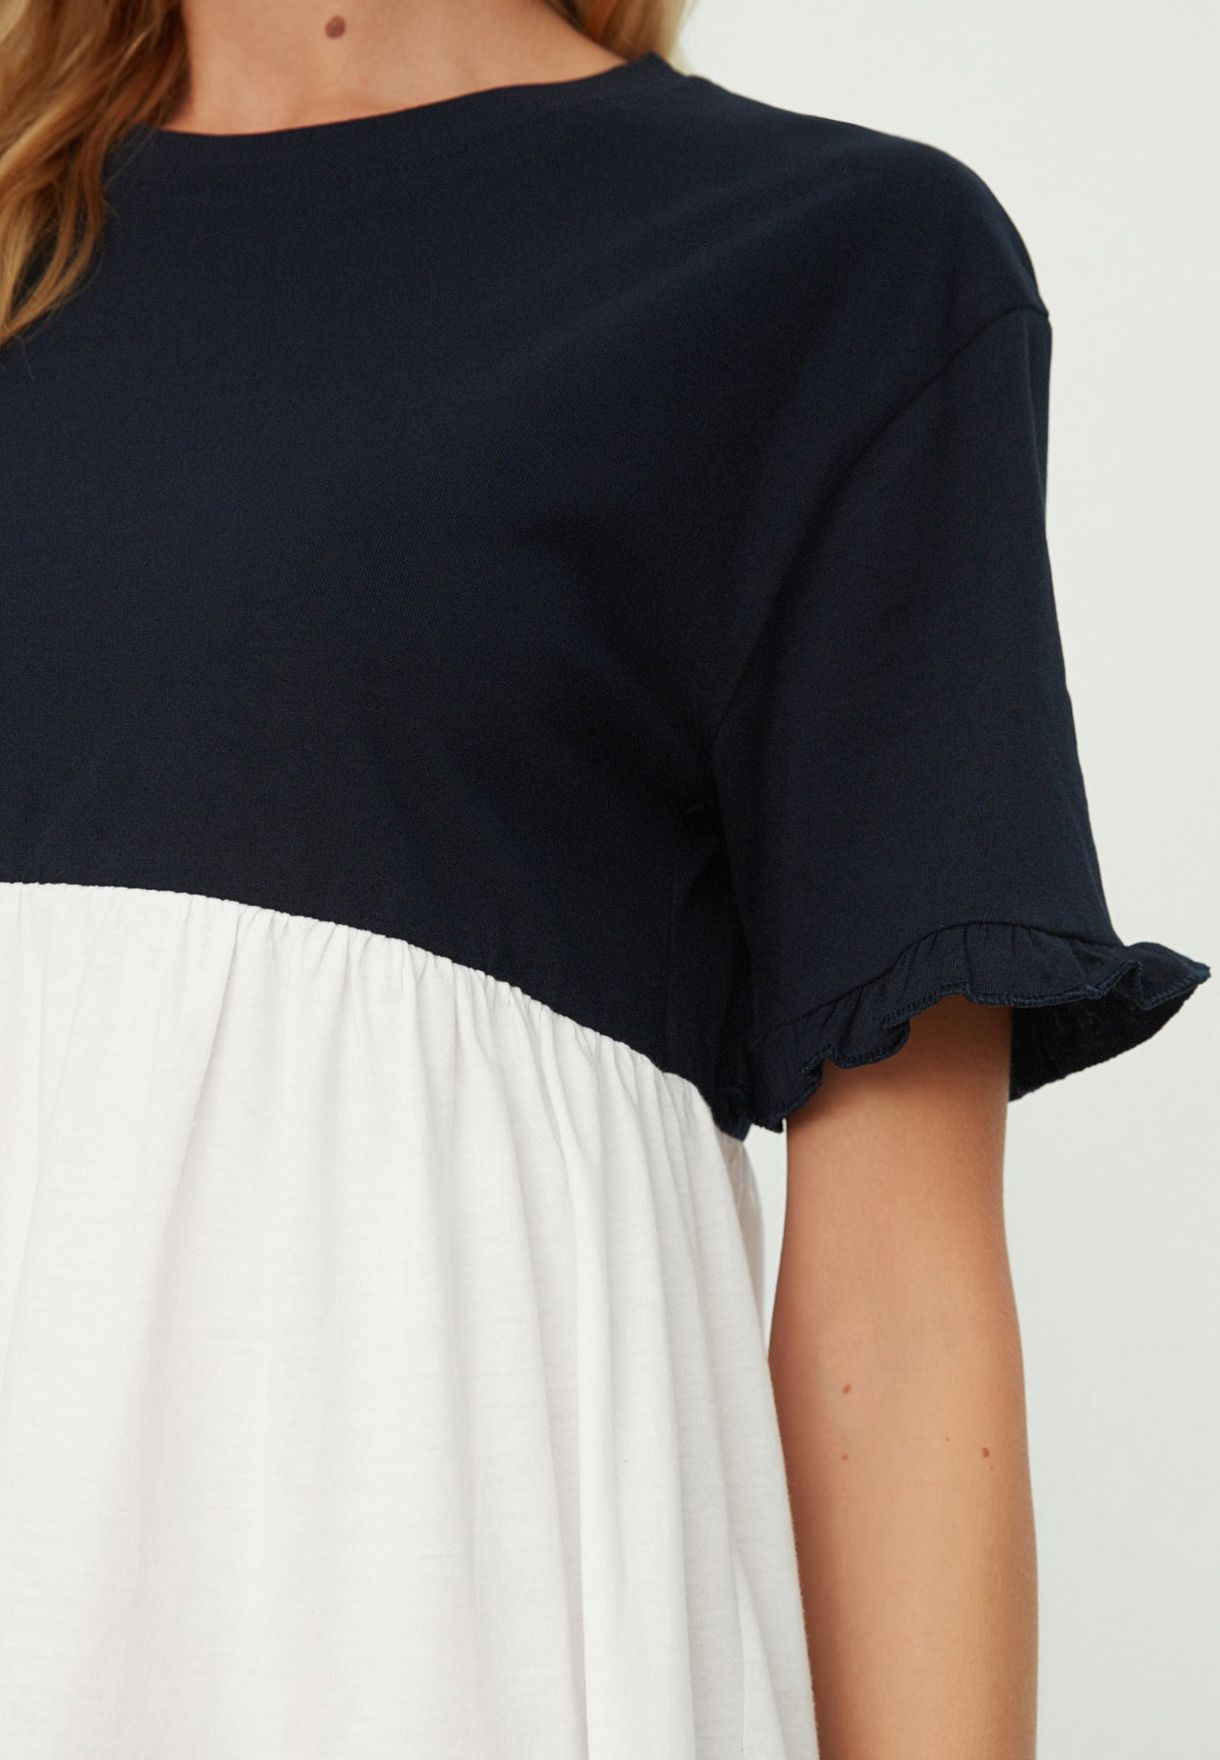 Ruffle Hem Colorblock Dress